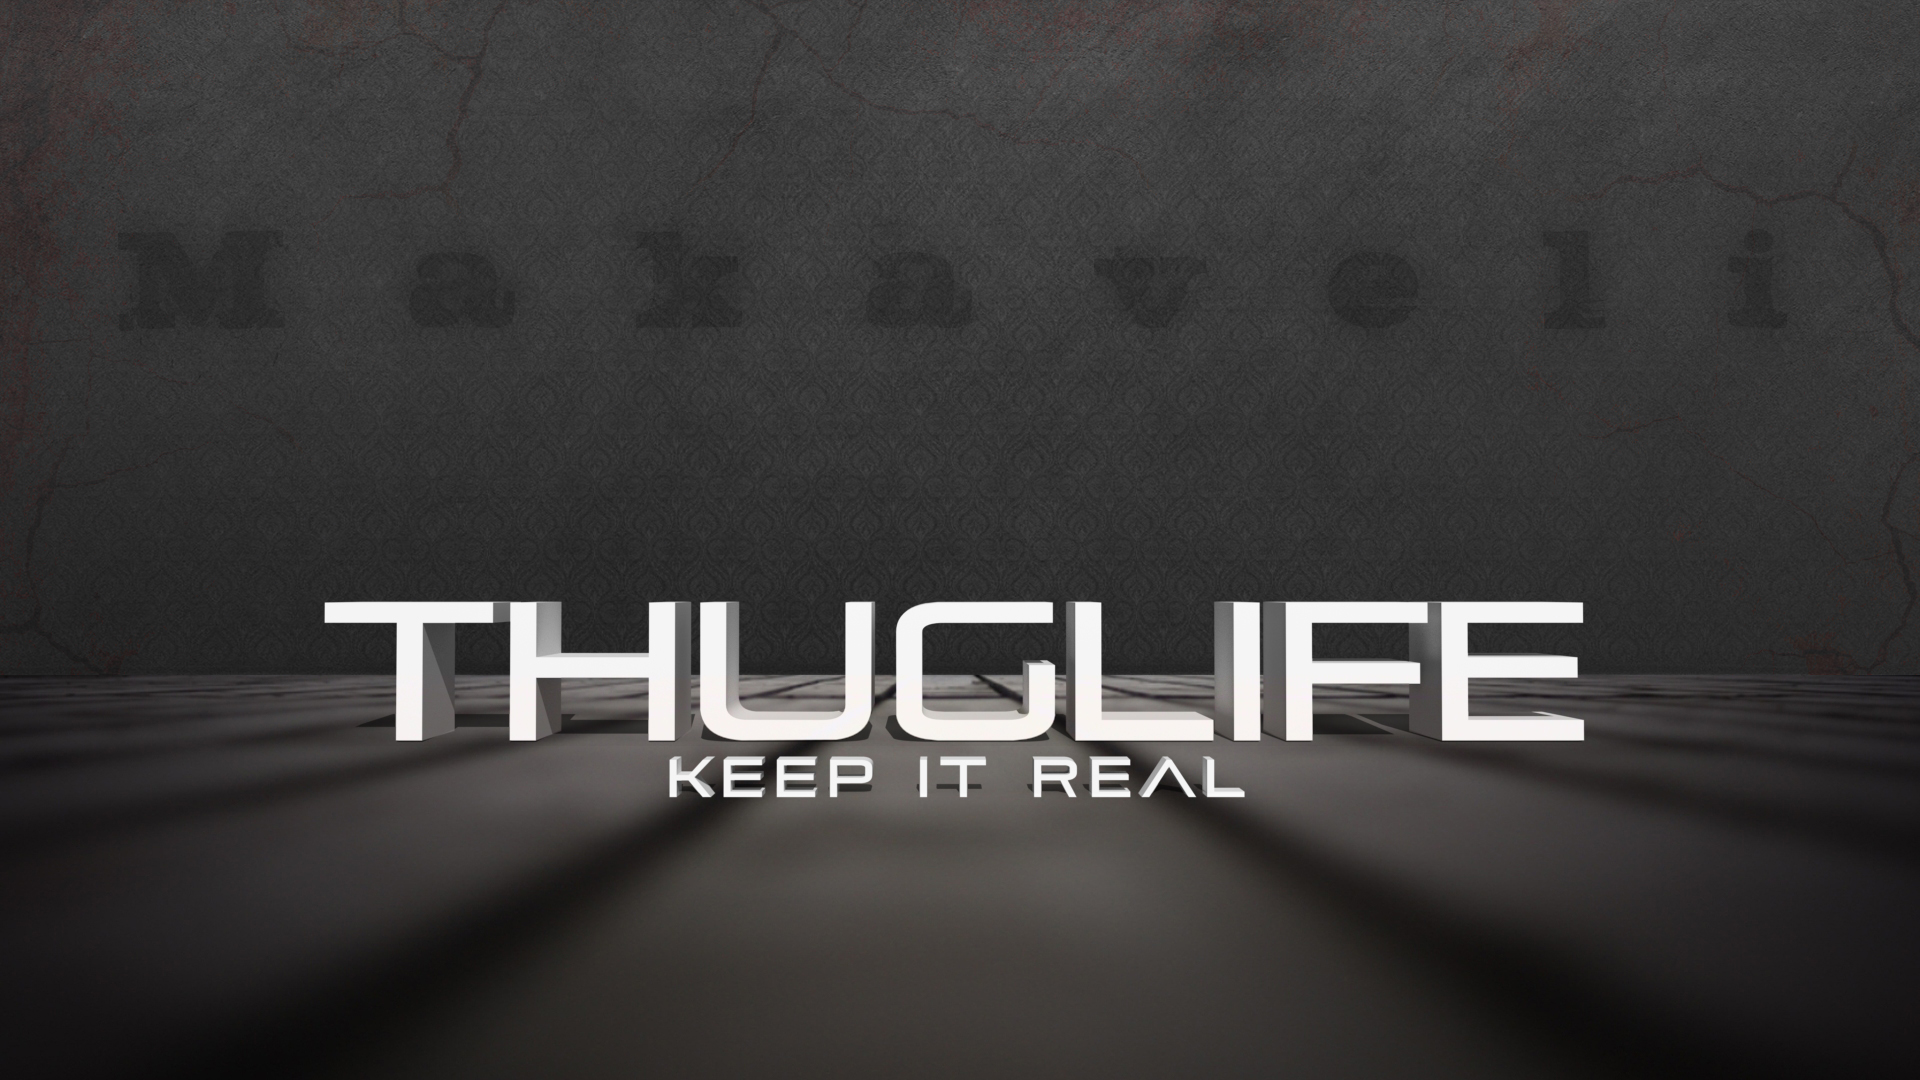 Thug Life HD Wallpaper 1920x1080